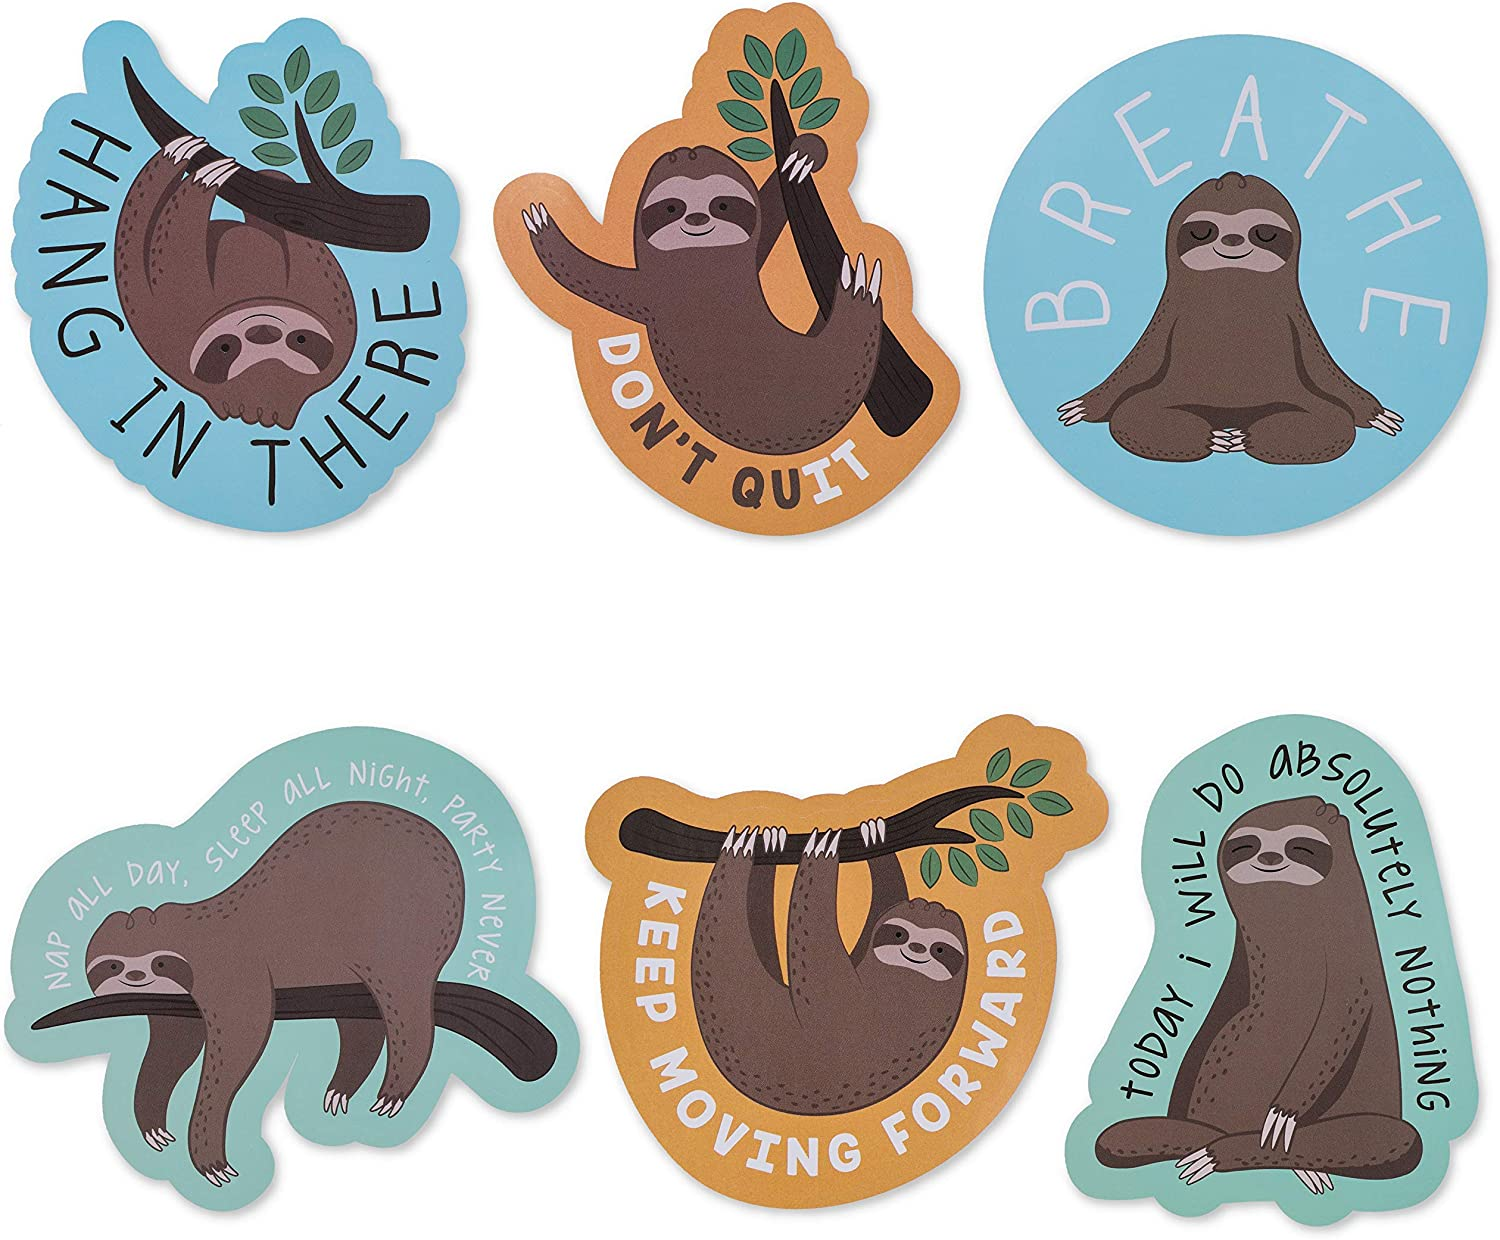 Sloth Meme Sticker Pack, Funny Quotes for Laptop, Cars, Water Bottle (6 Pack)